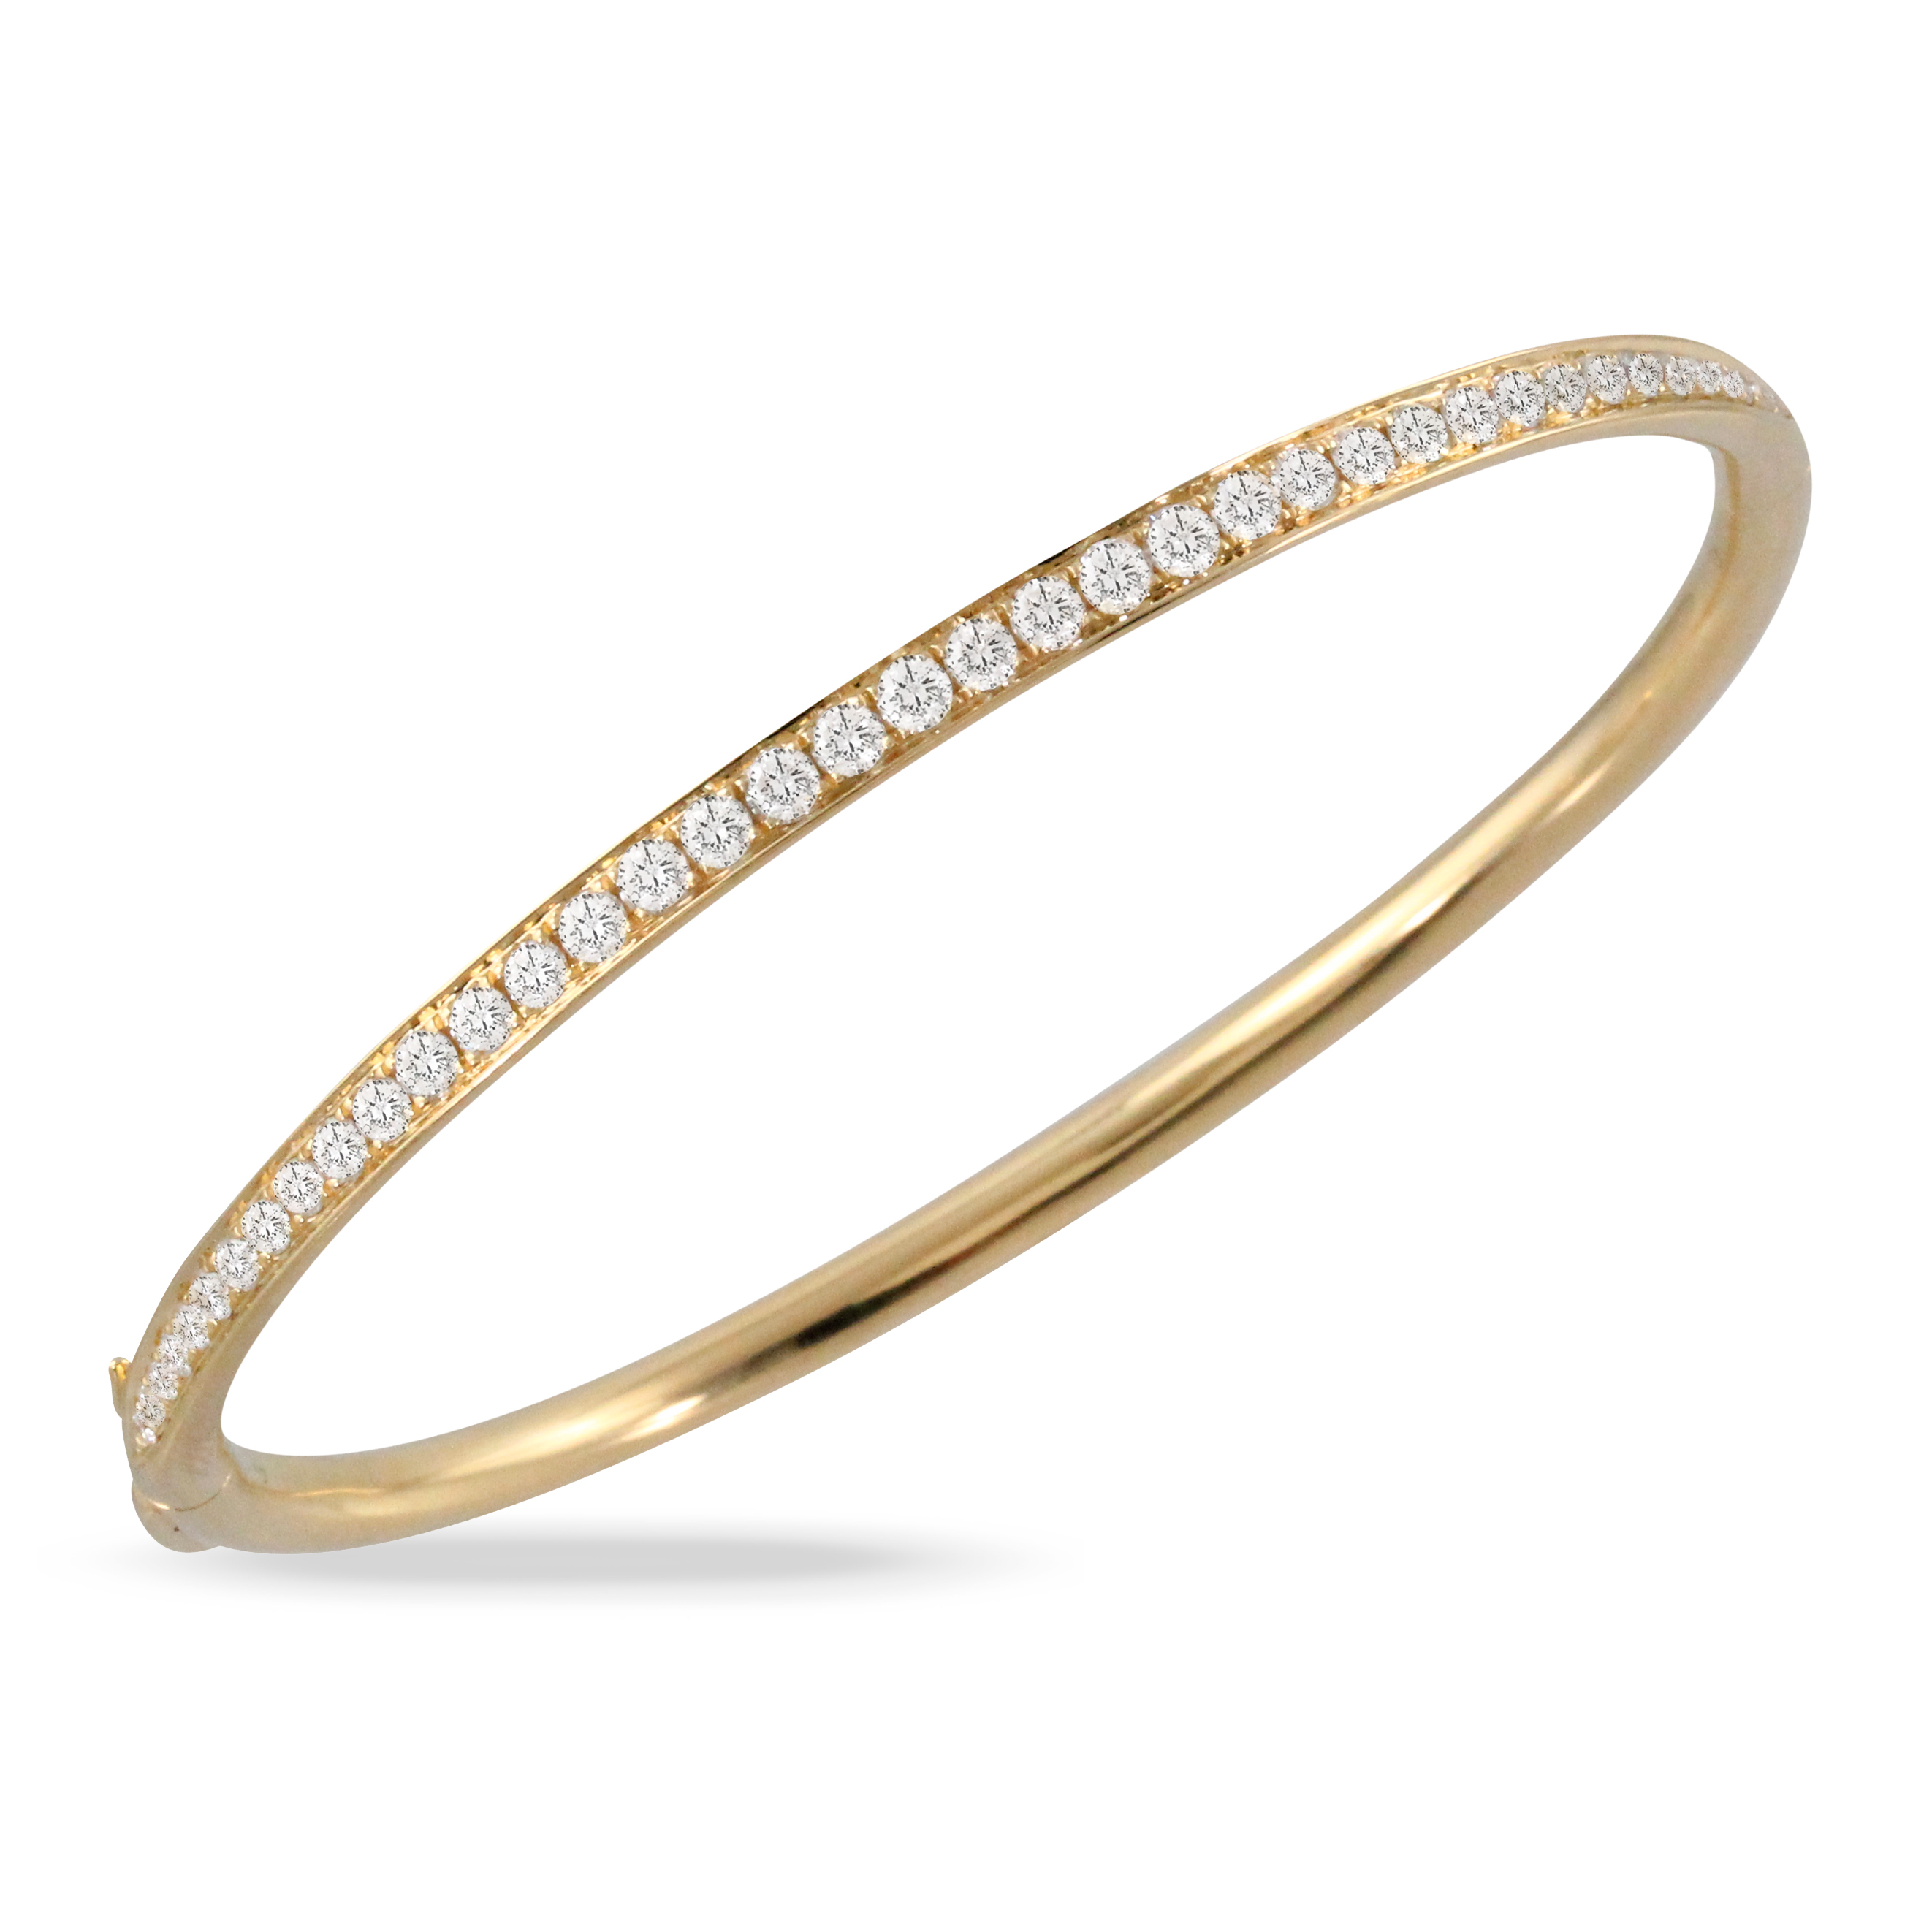 18K Yellow Gold Diamond Bangle Bracelet - 18K Yellow Gold Diamond Bangle